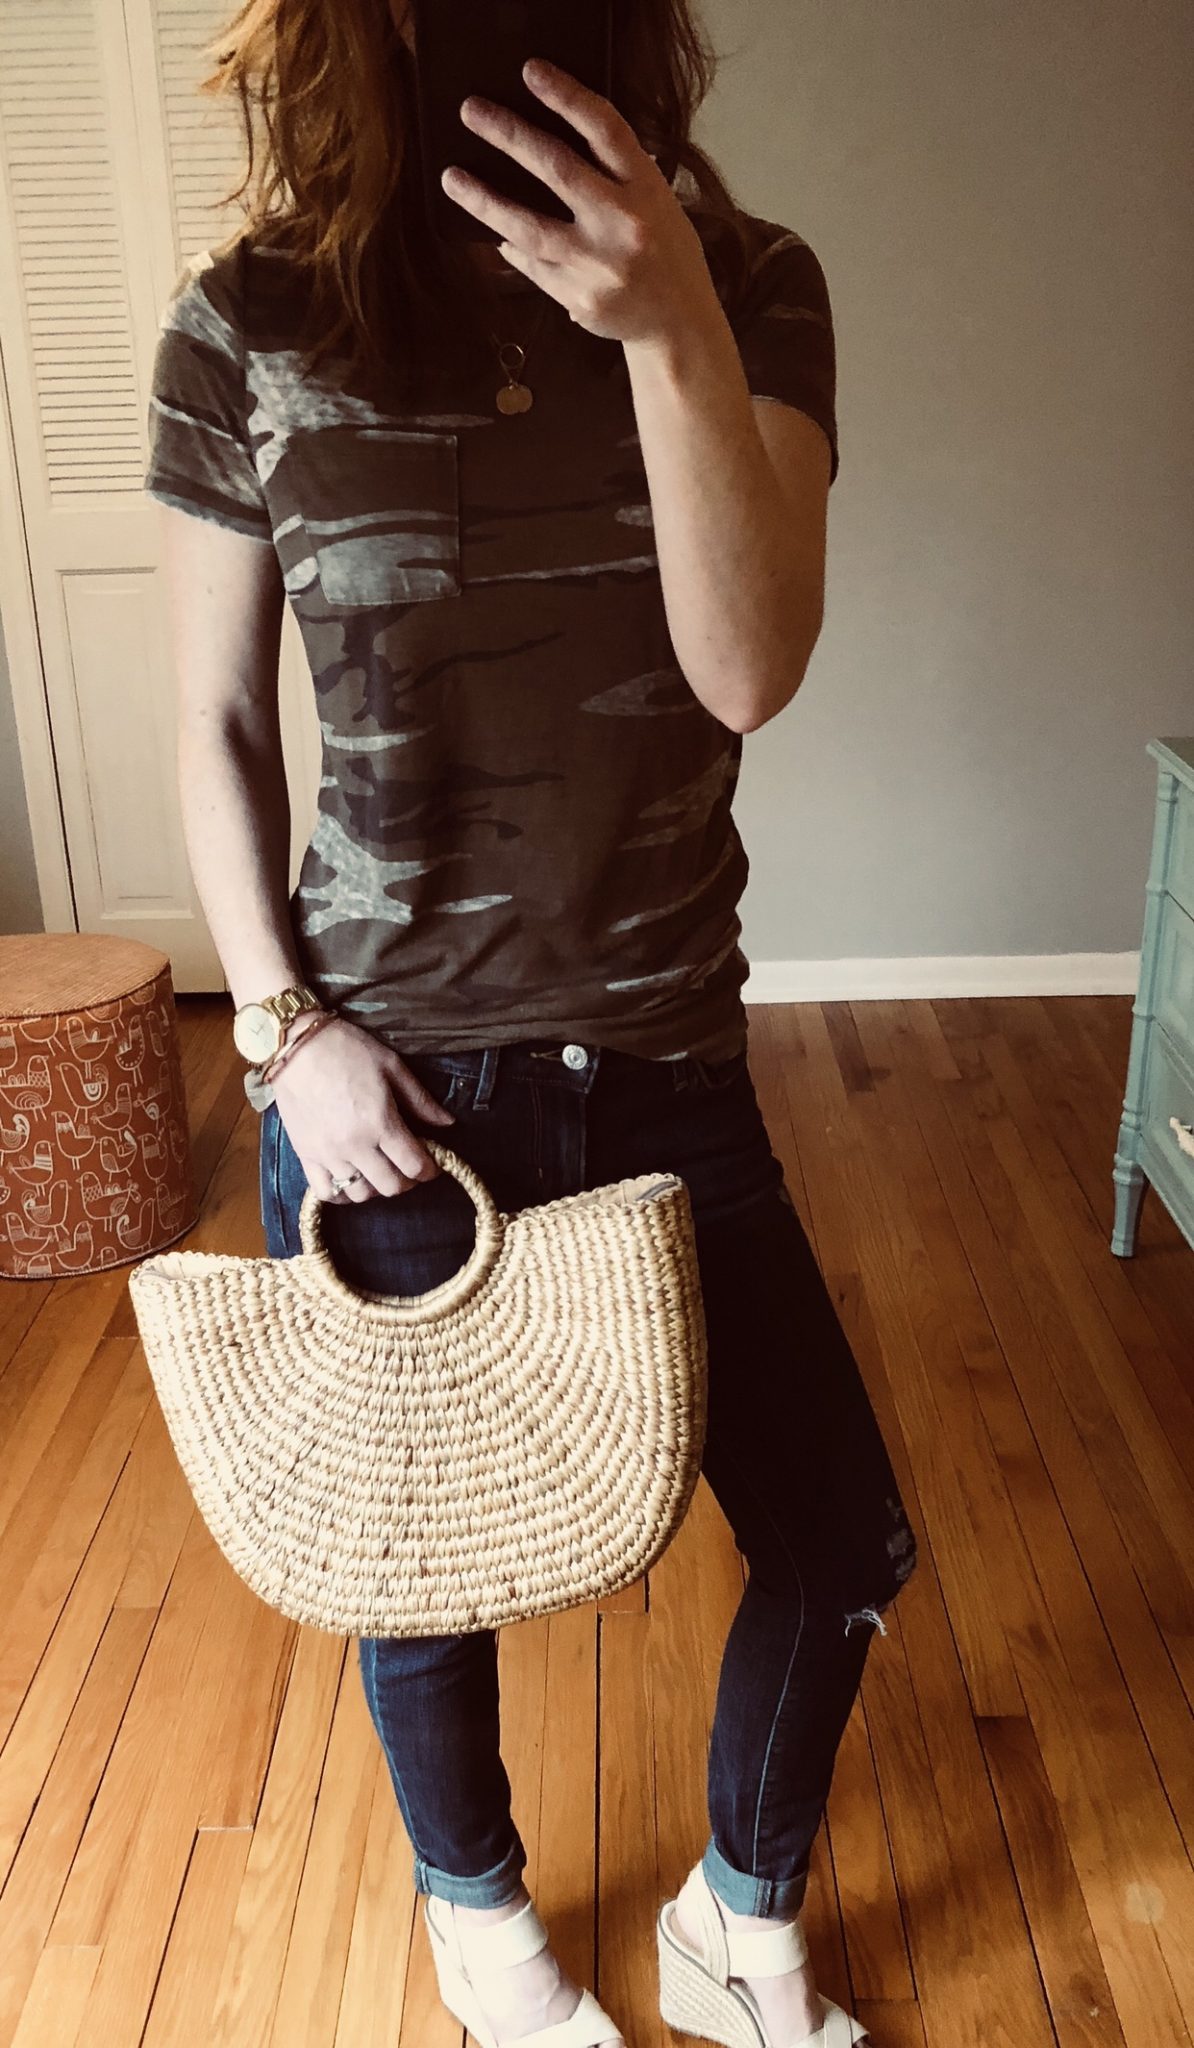 selfie with straw handbag, camp shirt and jeans